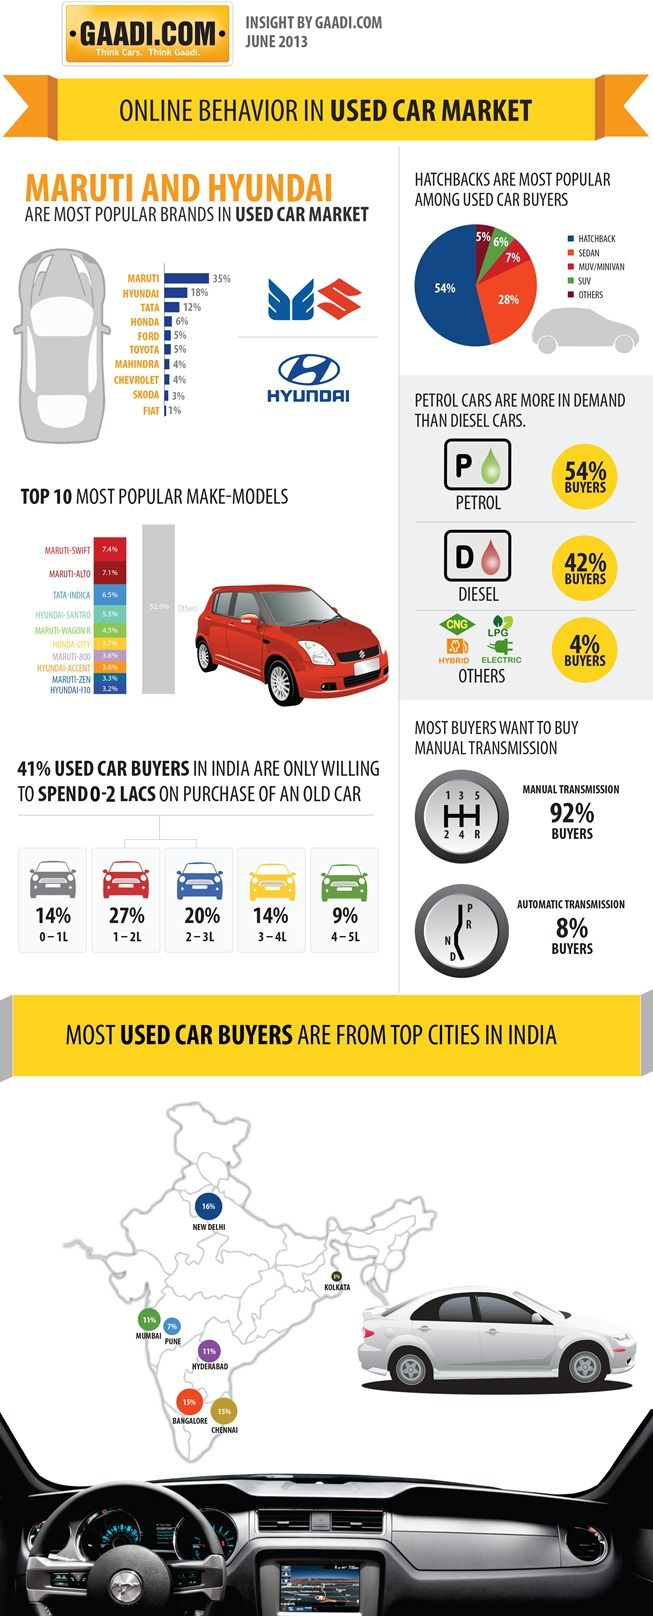 used car market is an integral part of the car market in india and in the